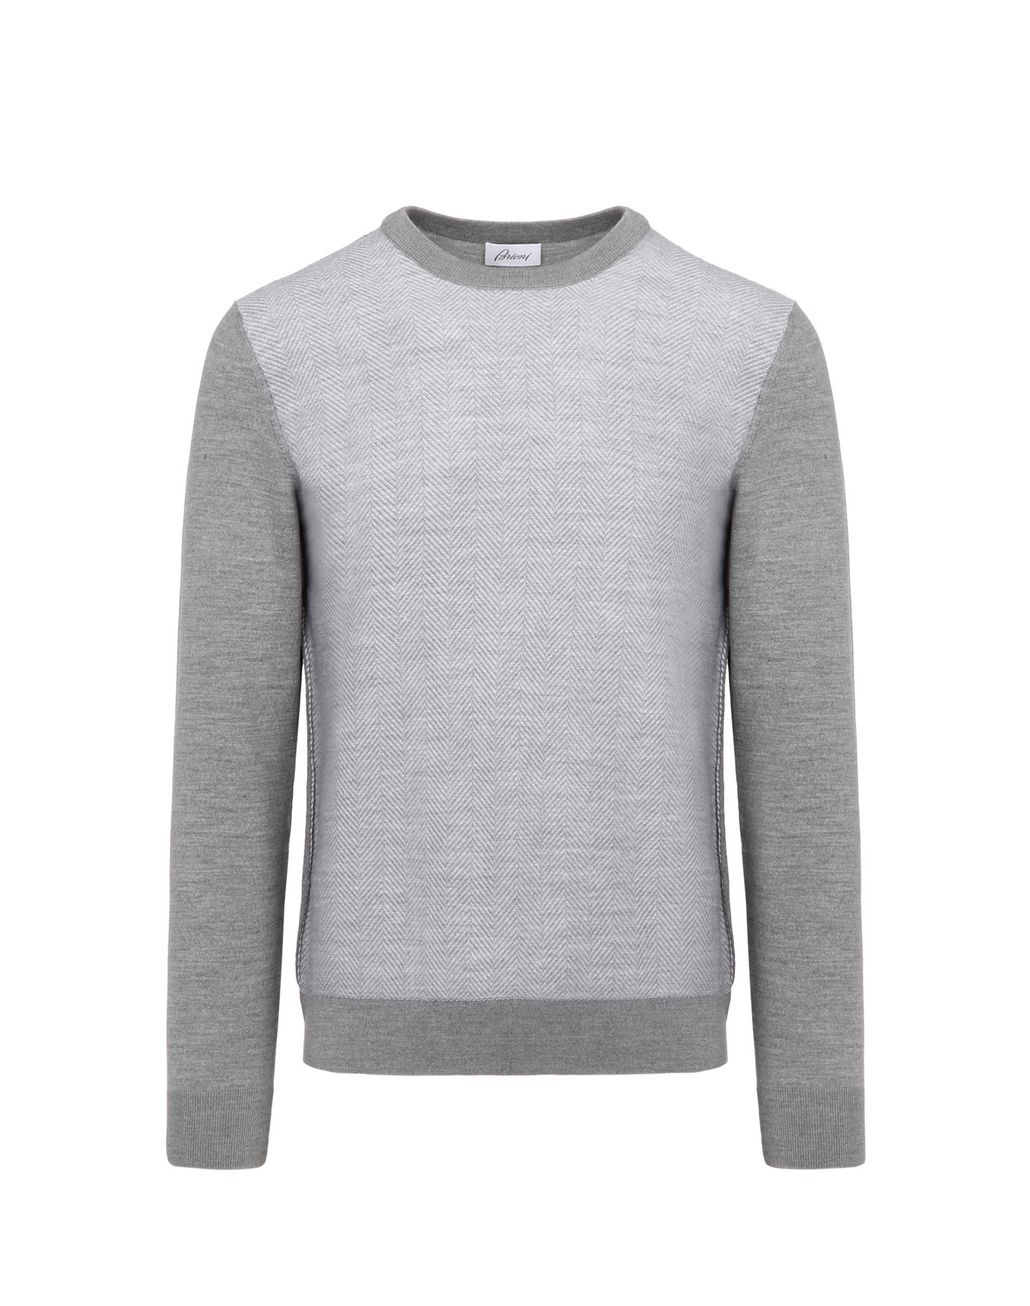 BRIONI Grey Herringbone Jacquard Sweater Knitwear Man f